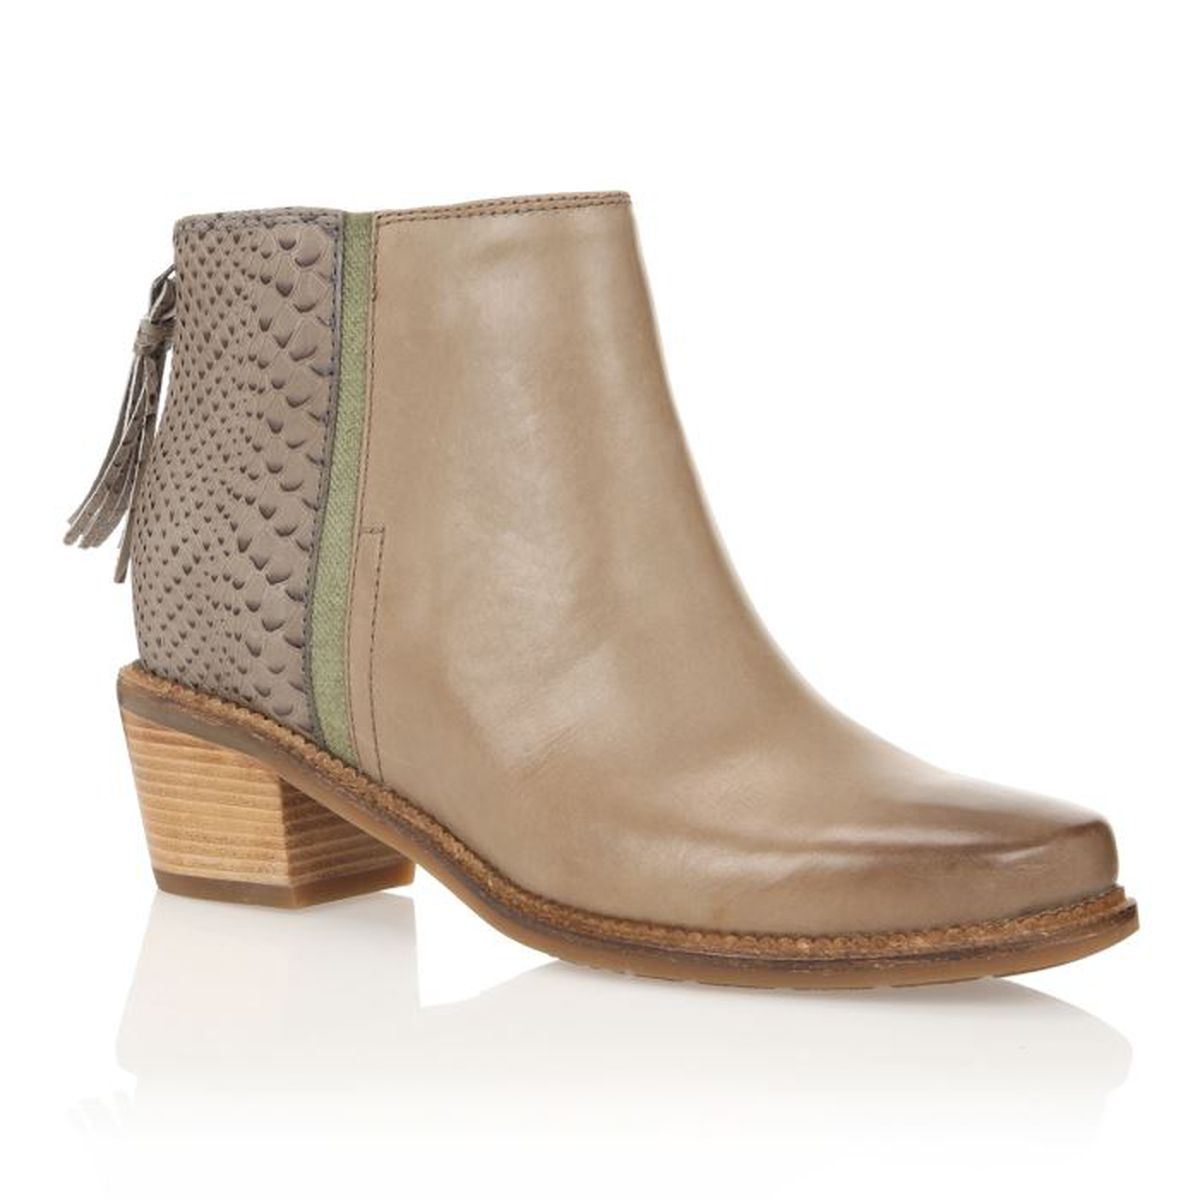 278e8a20780 HUSH PUPPIES Bottines Stella Cordell Femme femme Taupe - Achat ...